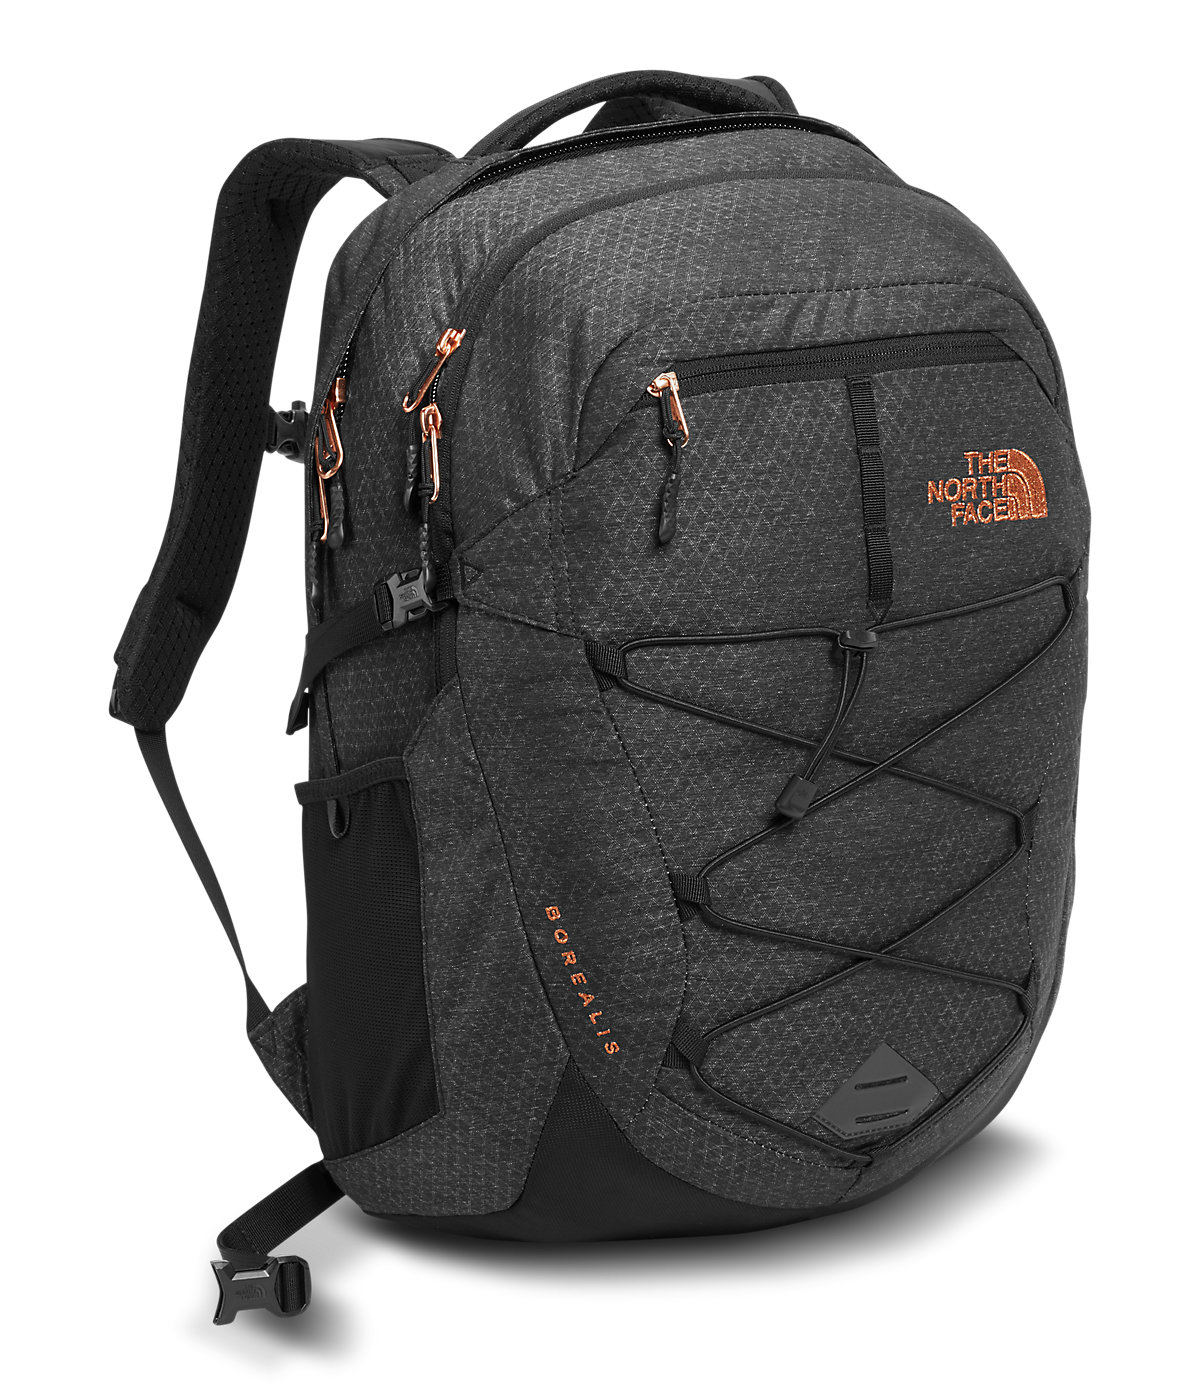 f97362e2b The North Face Women's Borealis 25 Liter Backpack